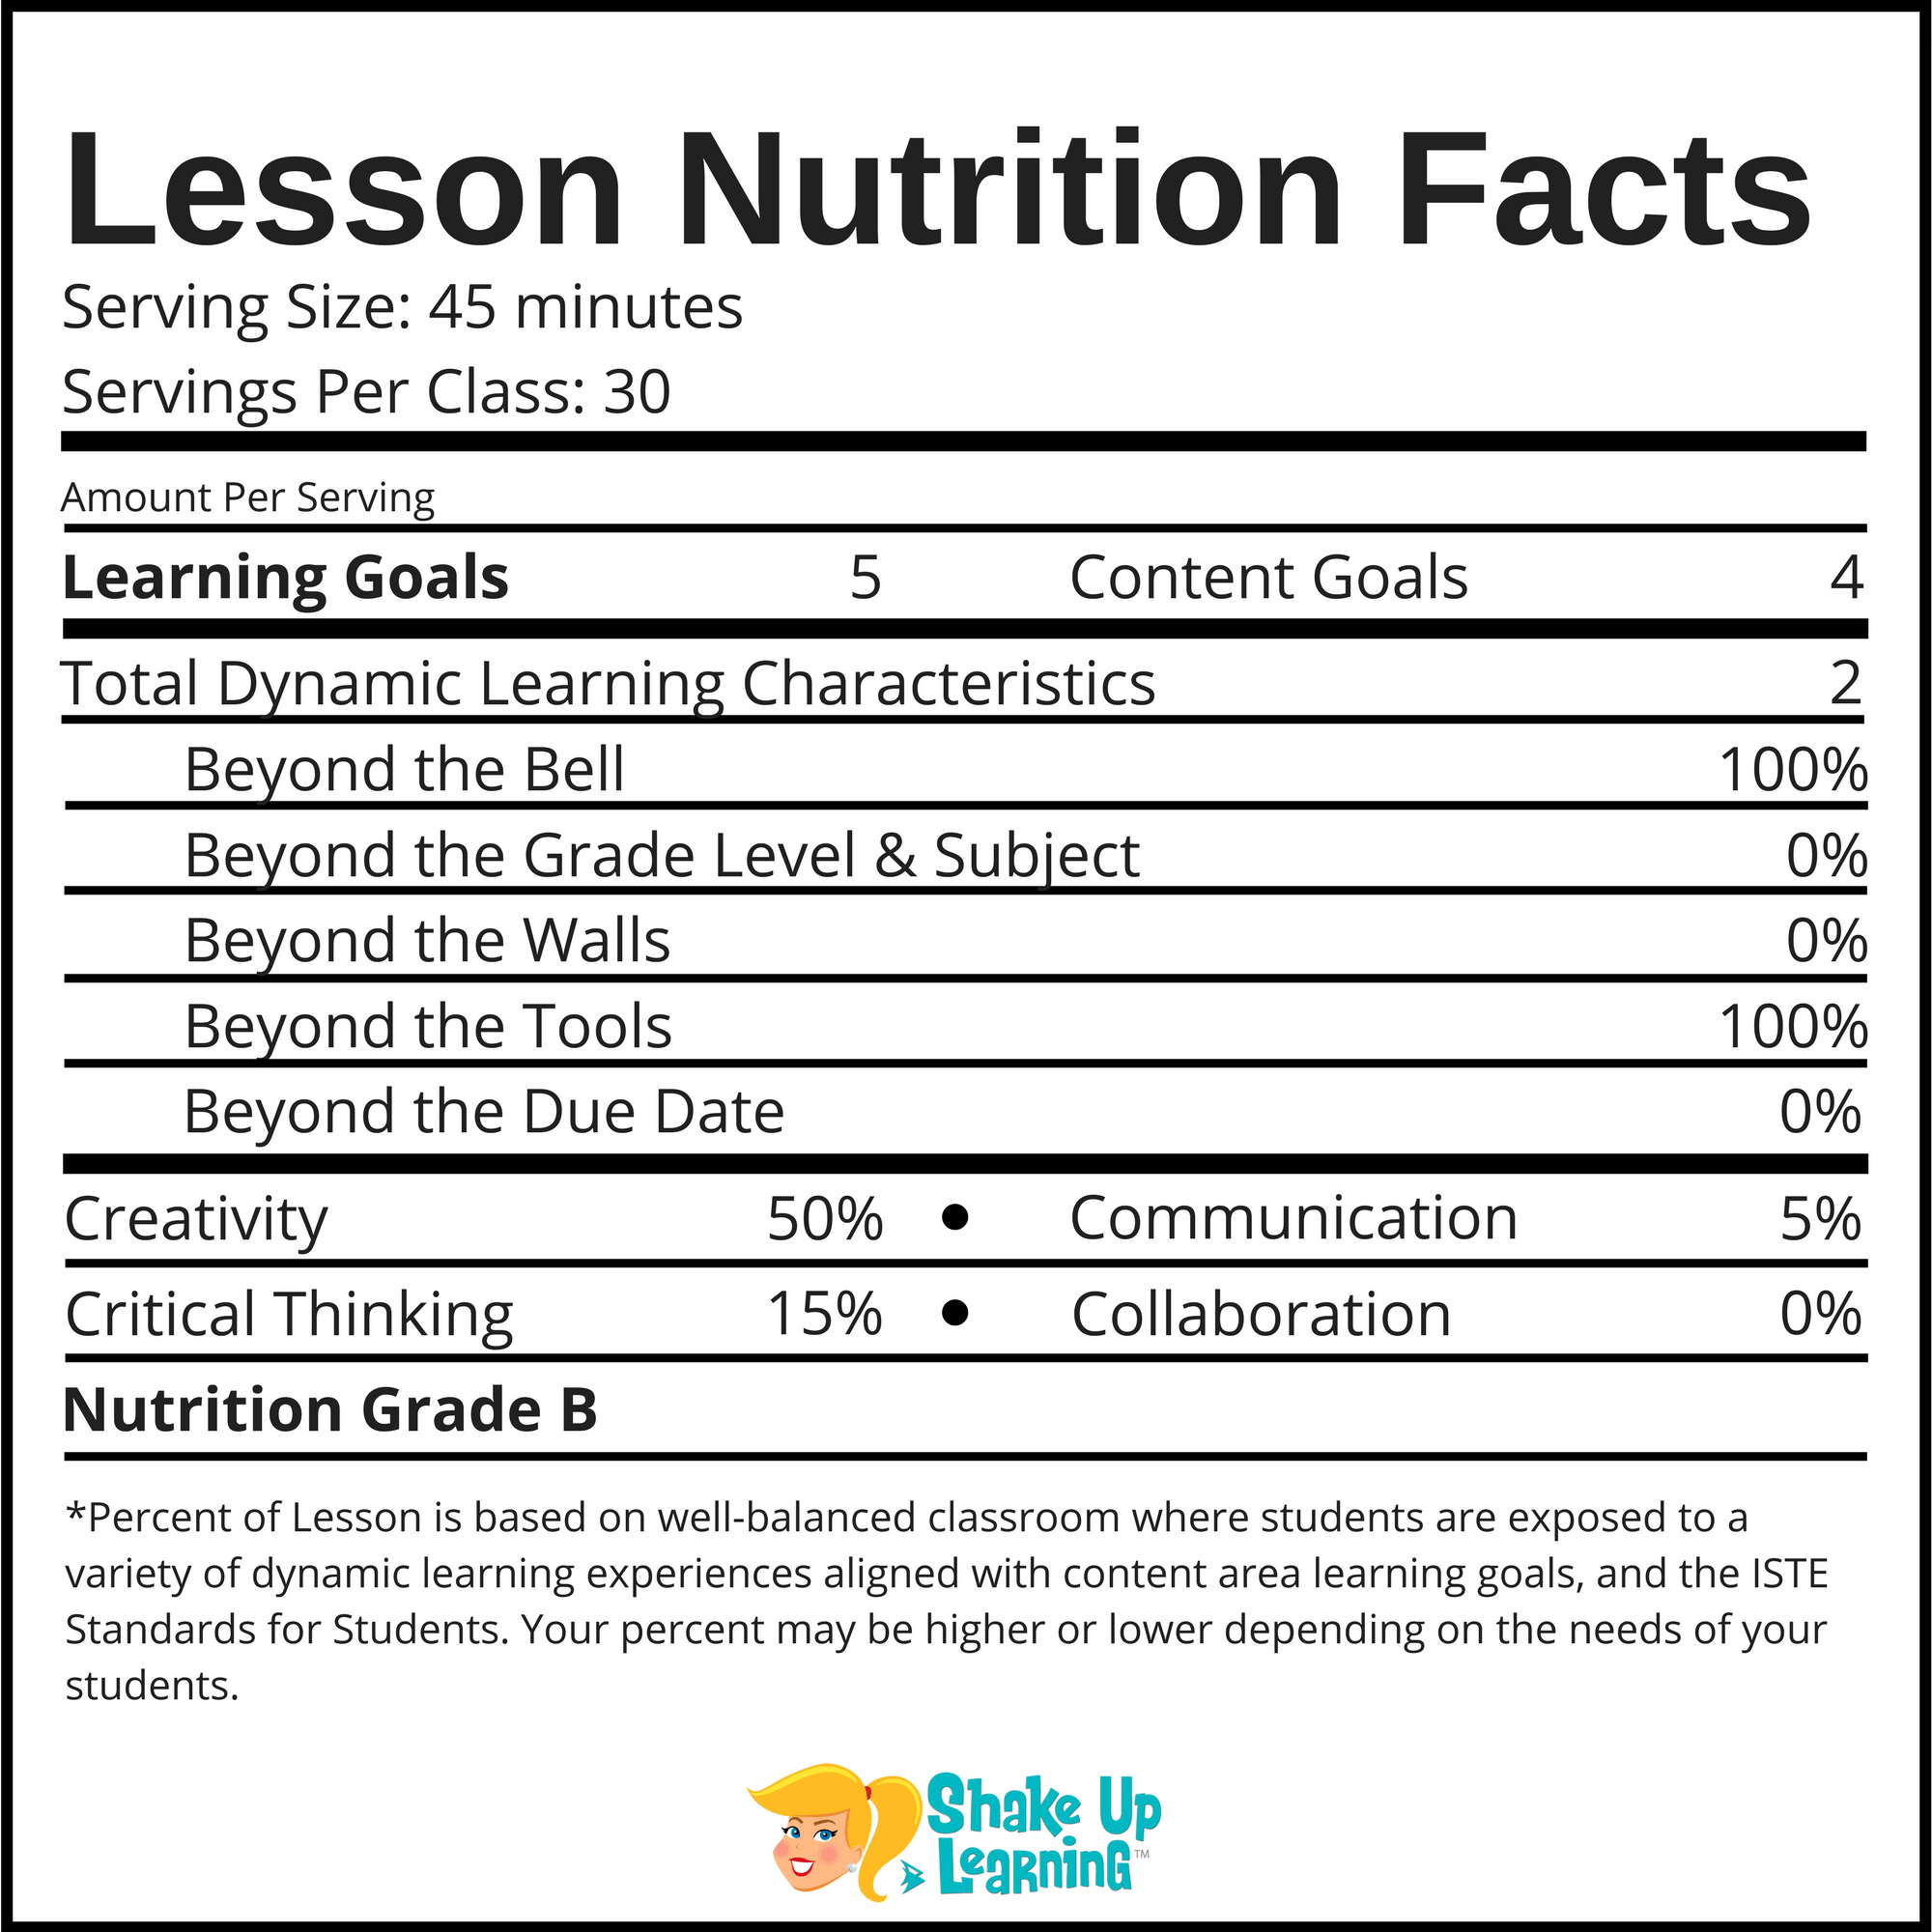 Lesson Nutrition Facts